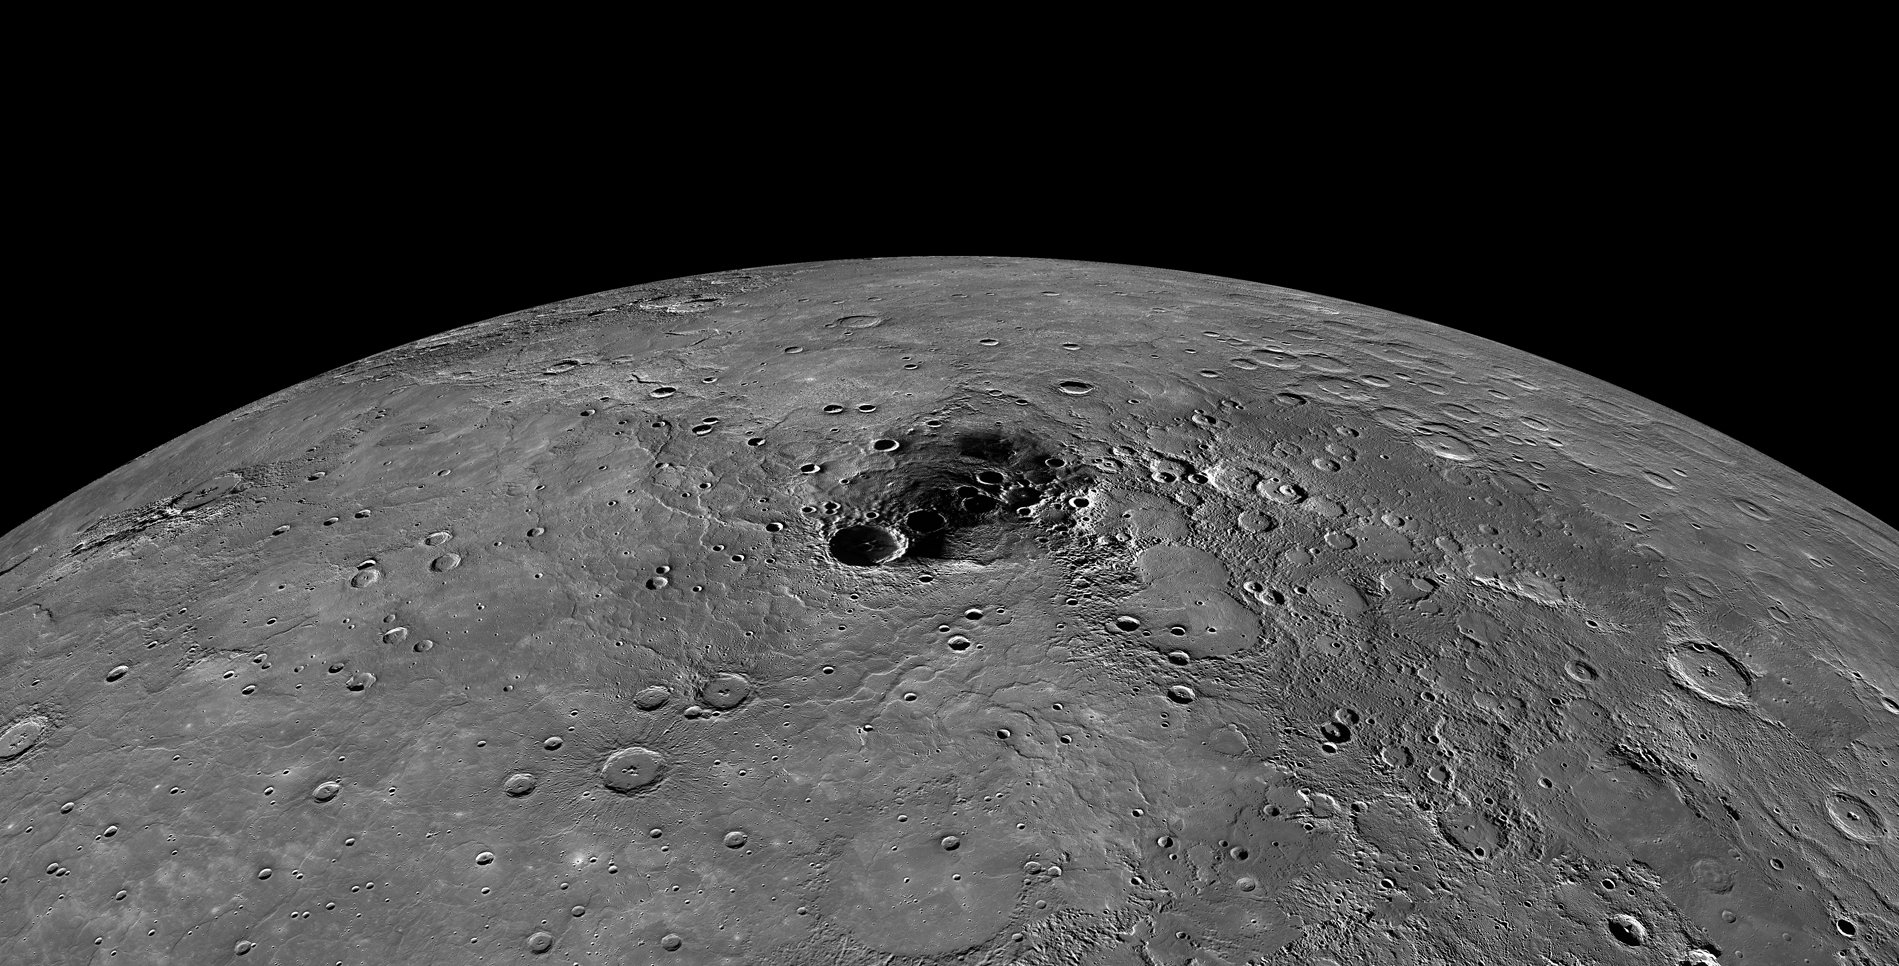 How does mercury look like